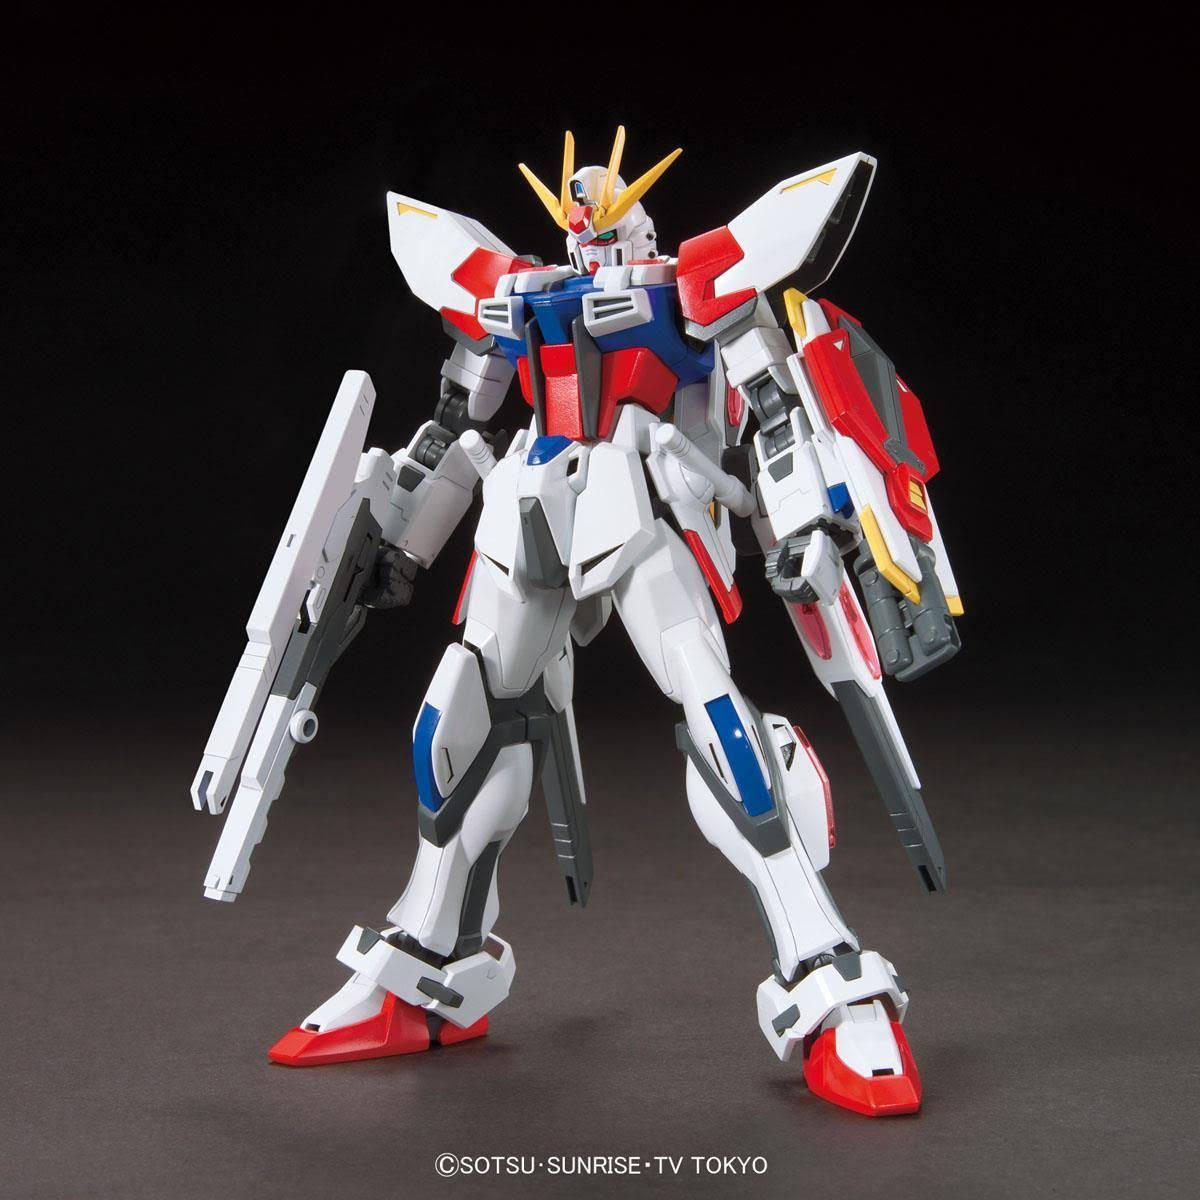 Bandai Hobby Gundam High Grade Build Fighters Plavsky Wing Model Kit - Scale 1:144